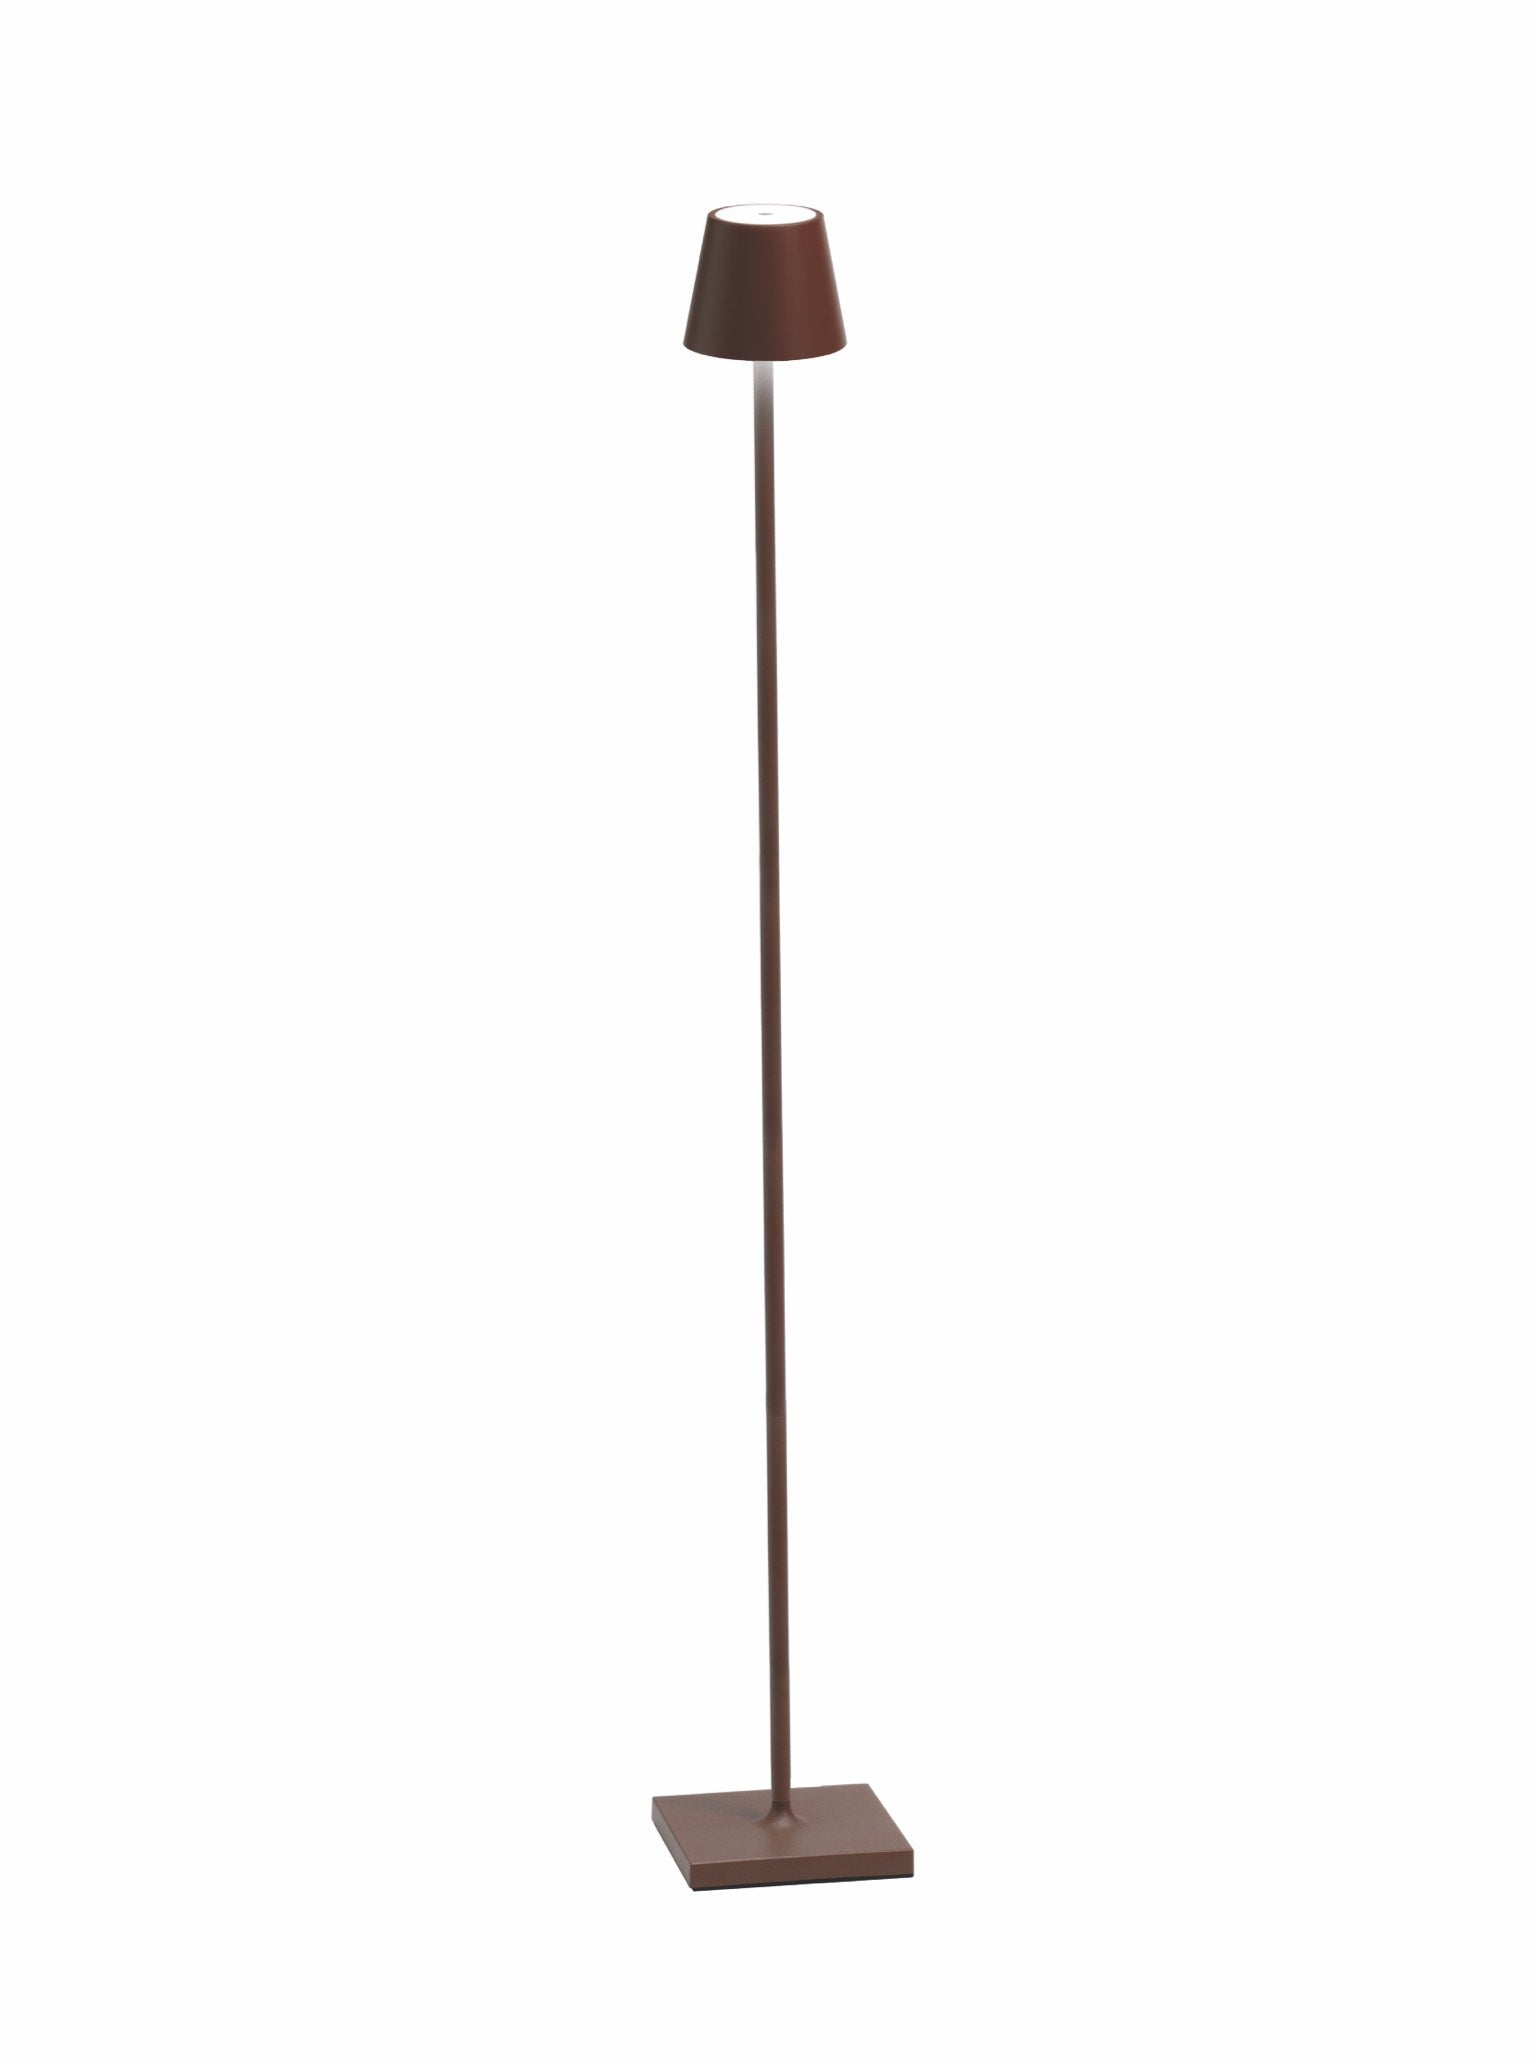 Poldina Floor Lamp